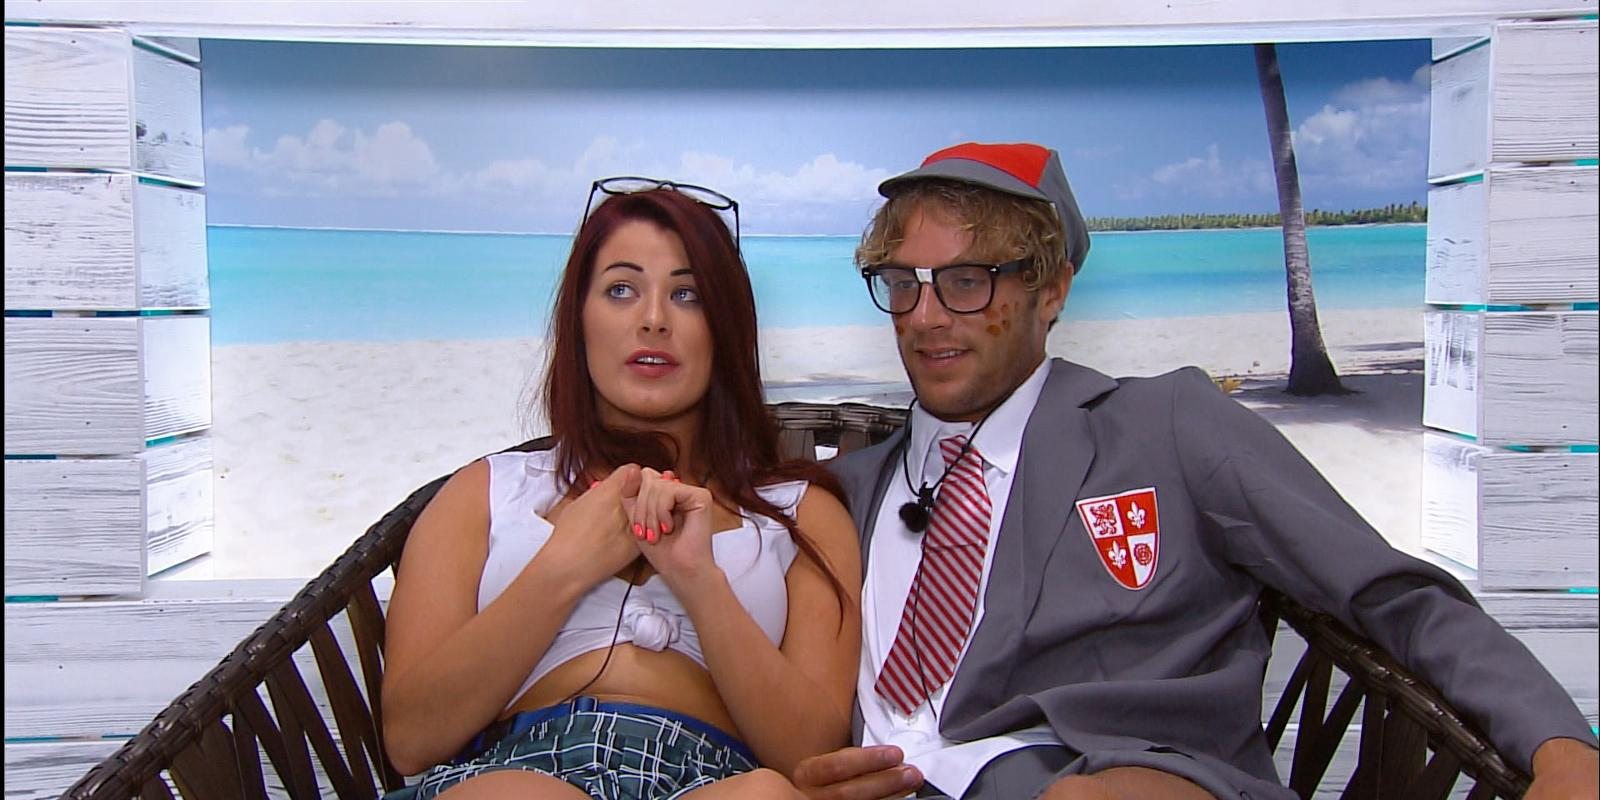 Love Island Ends: What We Loved About The Show And Why We